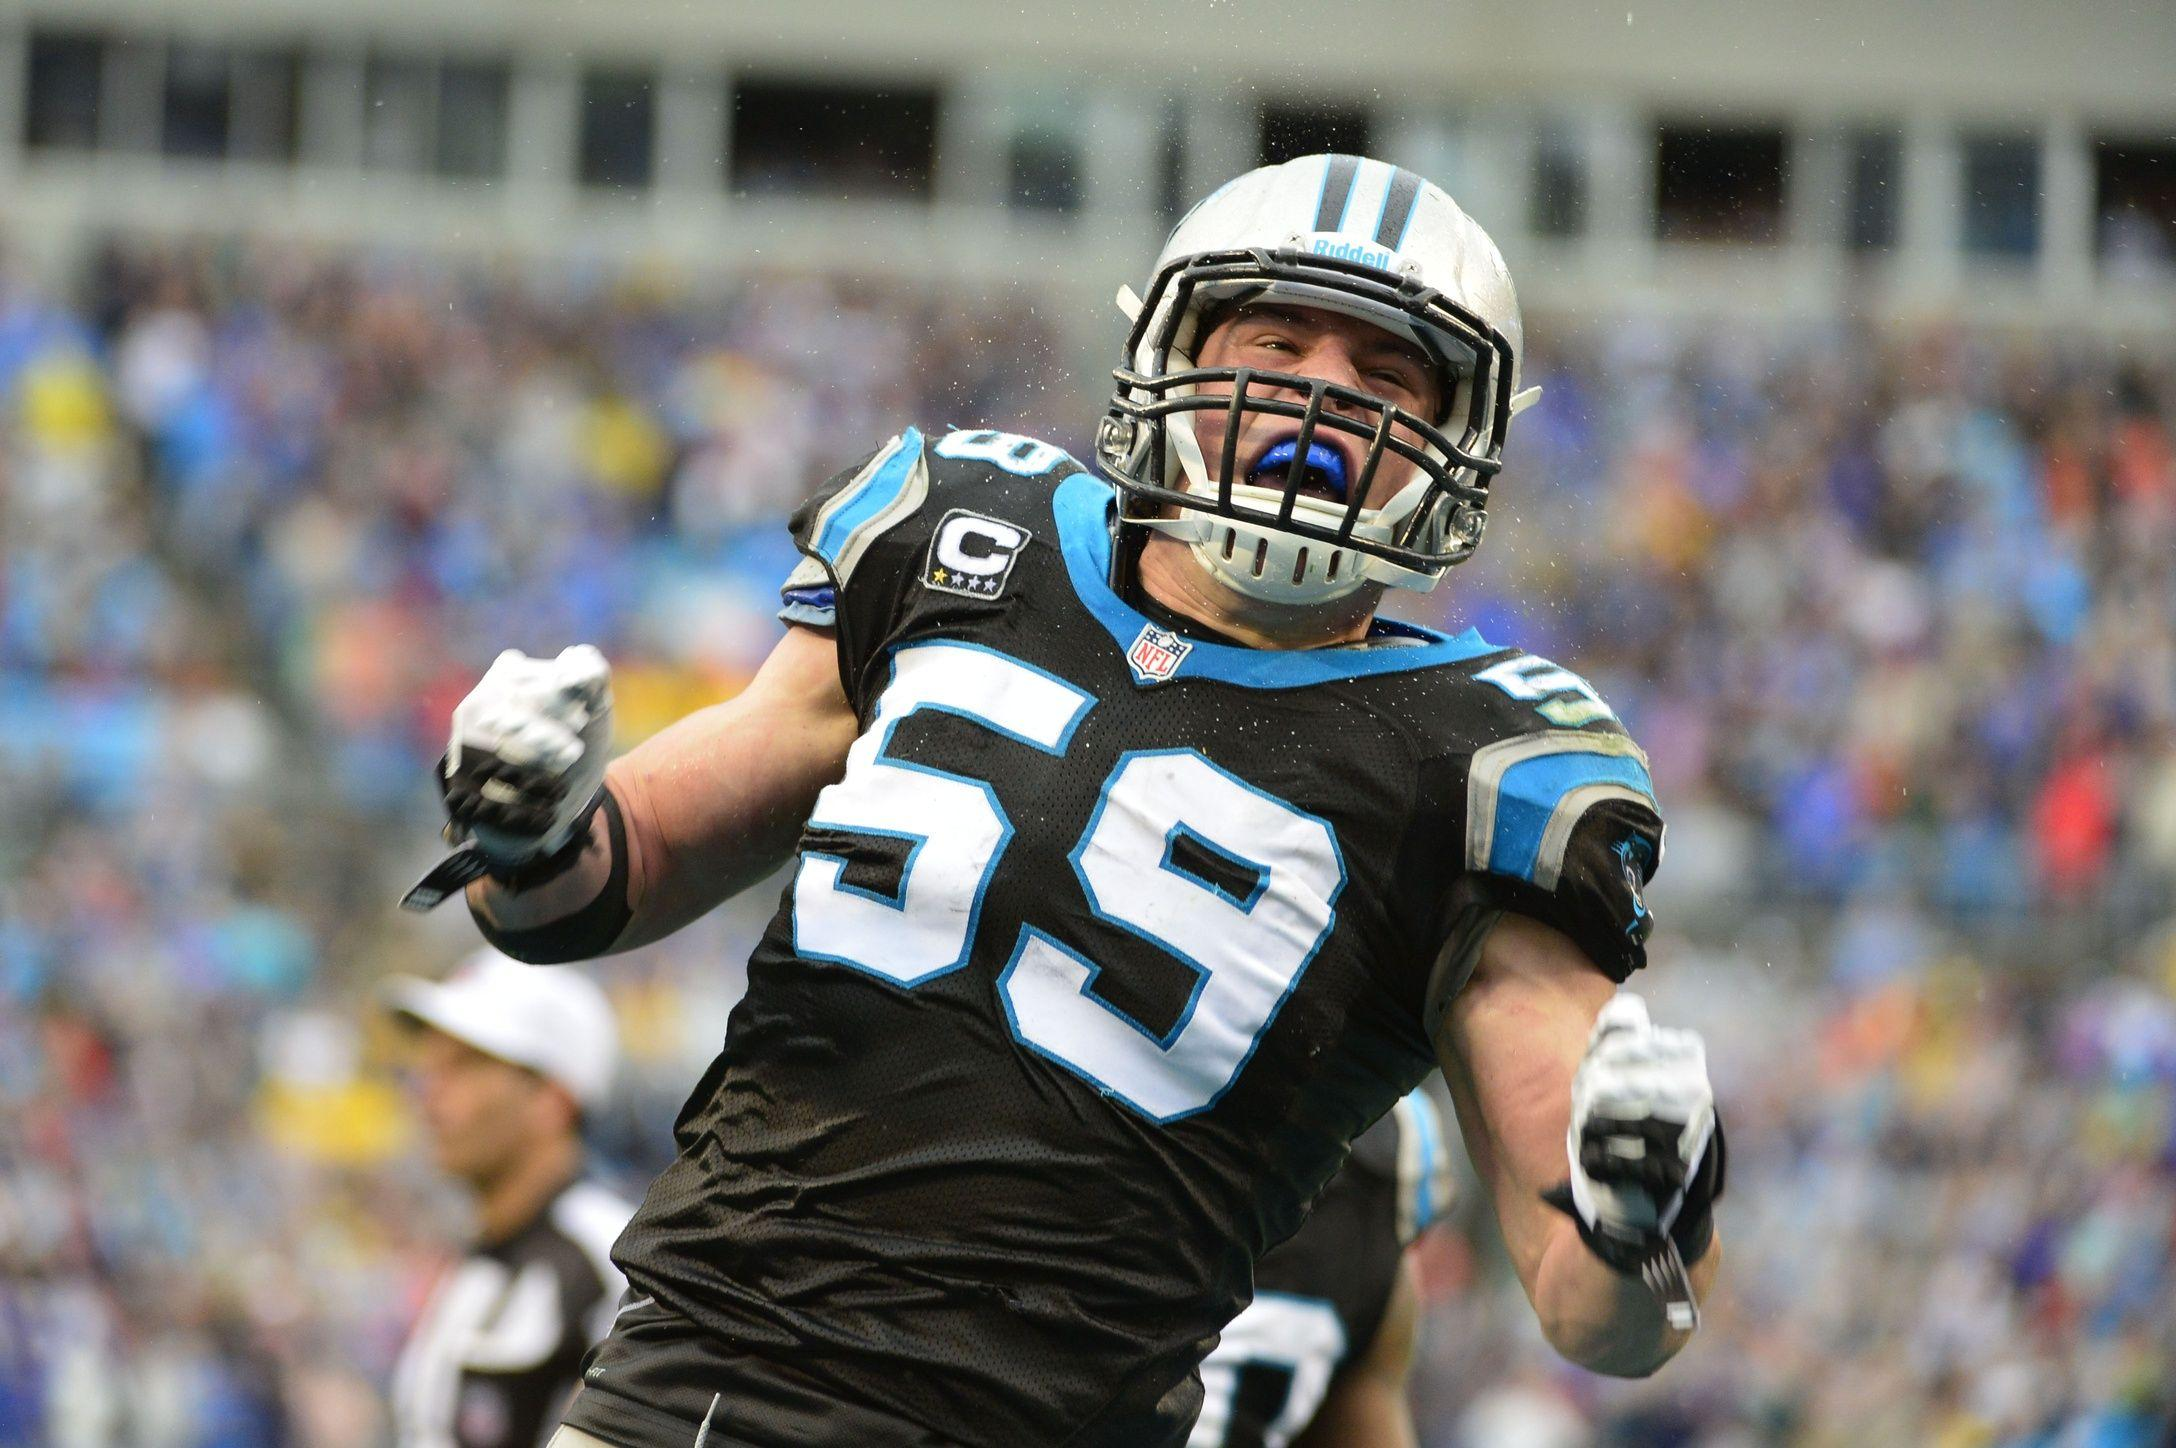 Luke Kuechly Wallpapers High Quality